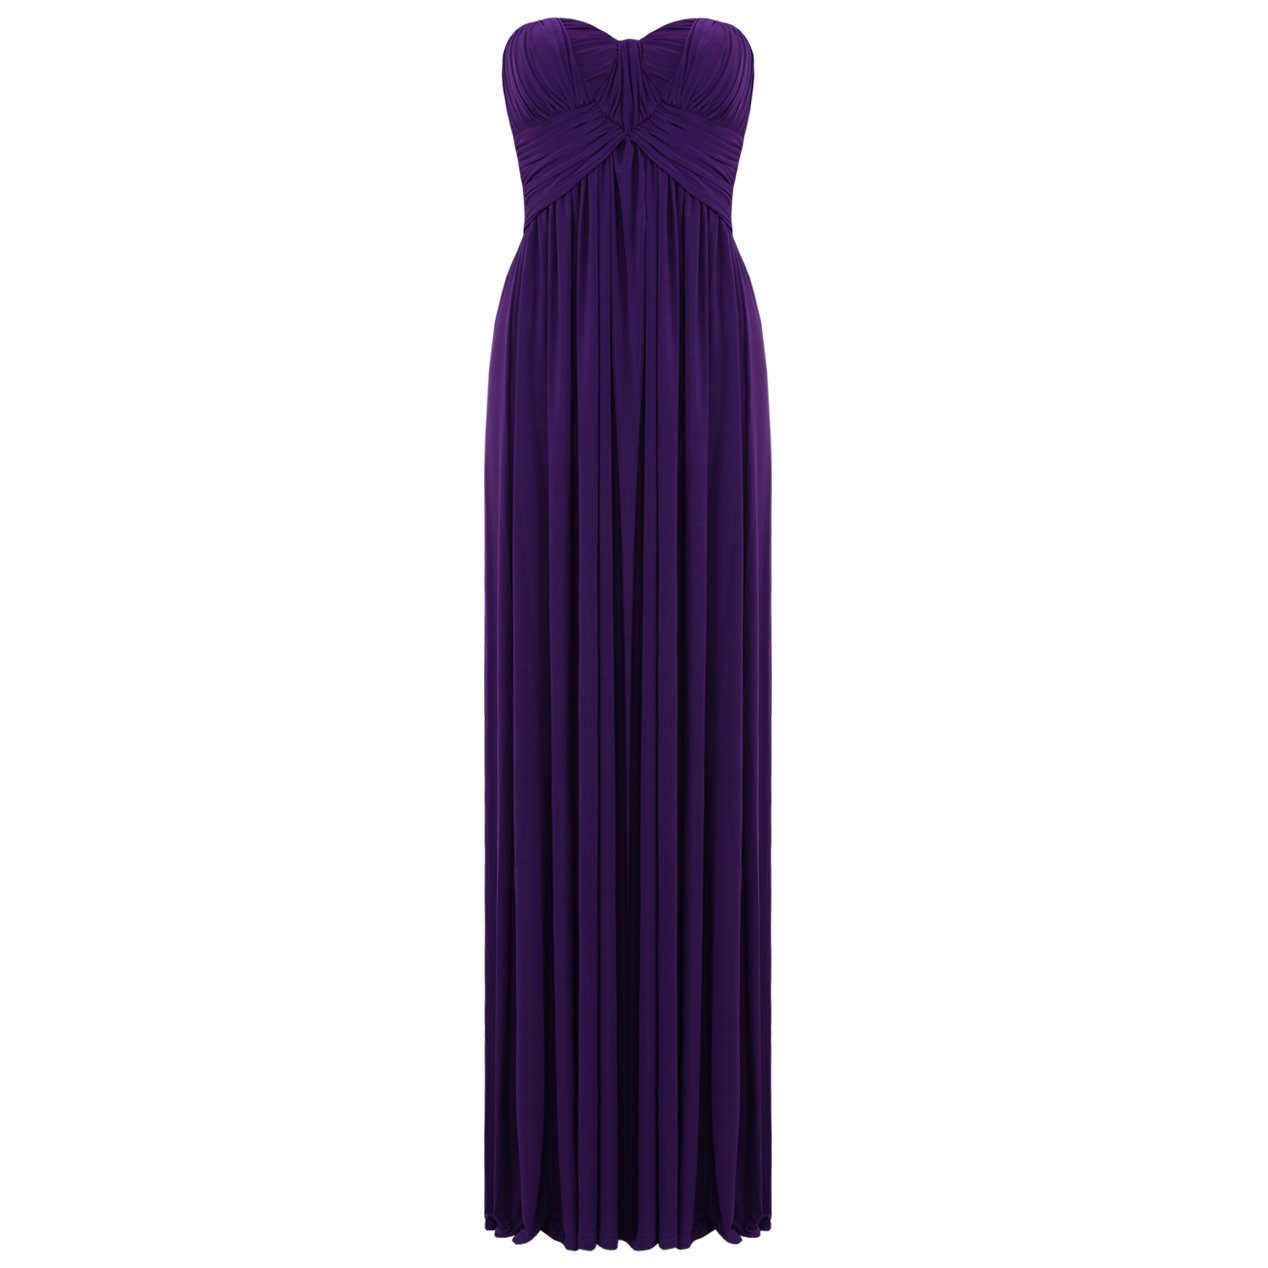 JESSICA ALBA PURPLE LADIES STRAPLESS LONG EVENING PARTY PROM GOWN MAXI DRESS UK 12-14, US 8-10